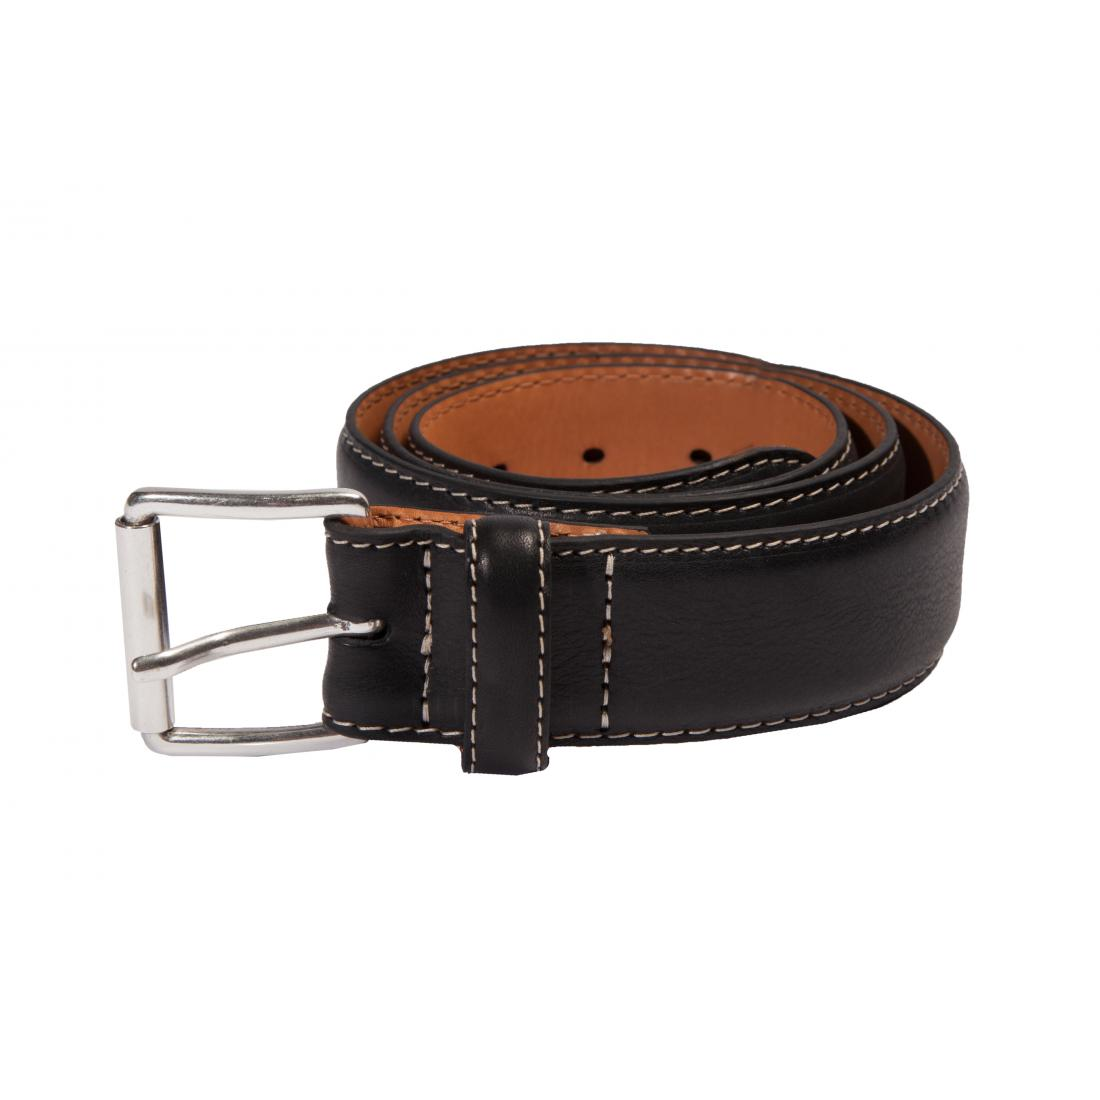 Fabric elastic stretch belts are a great addition to any man's wardrobe. They are comfortable and versatile and come in a variety of styles and colors at inerloadsr5s.gq